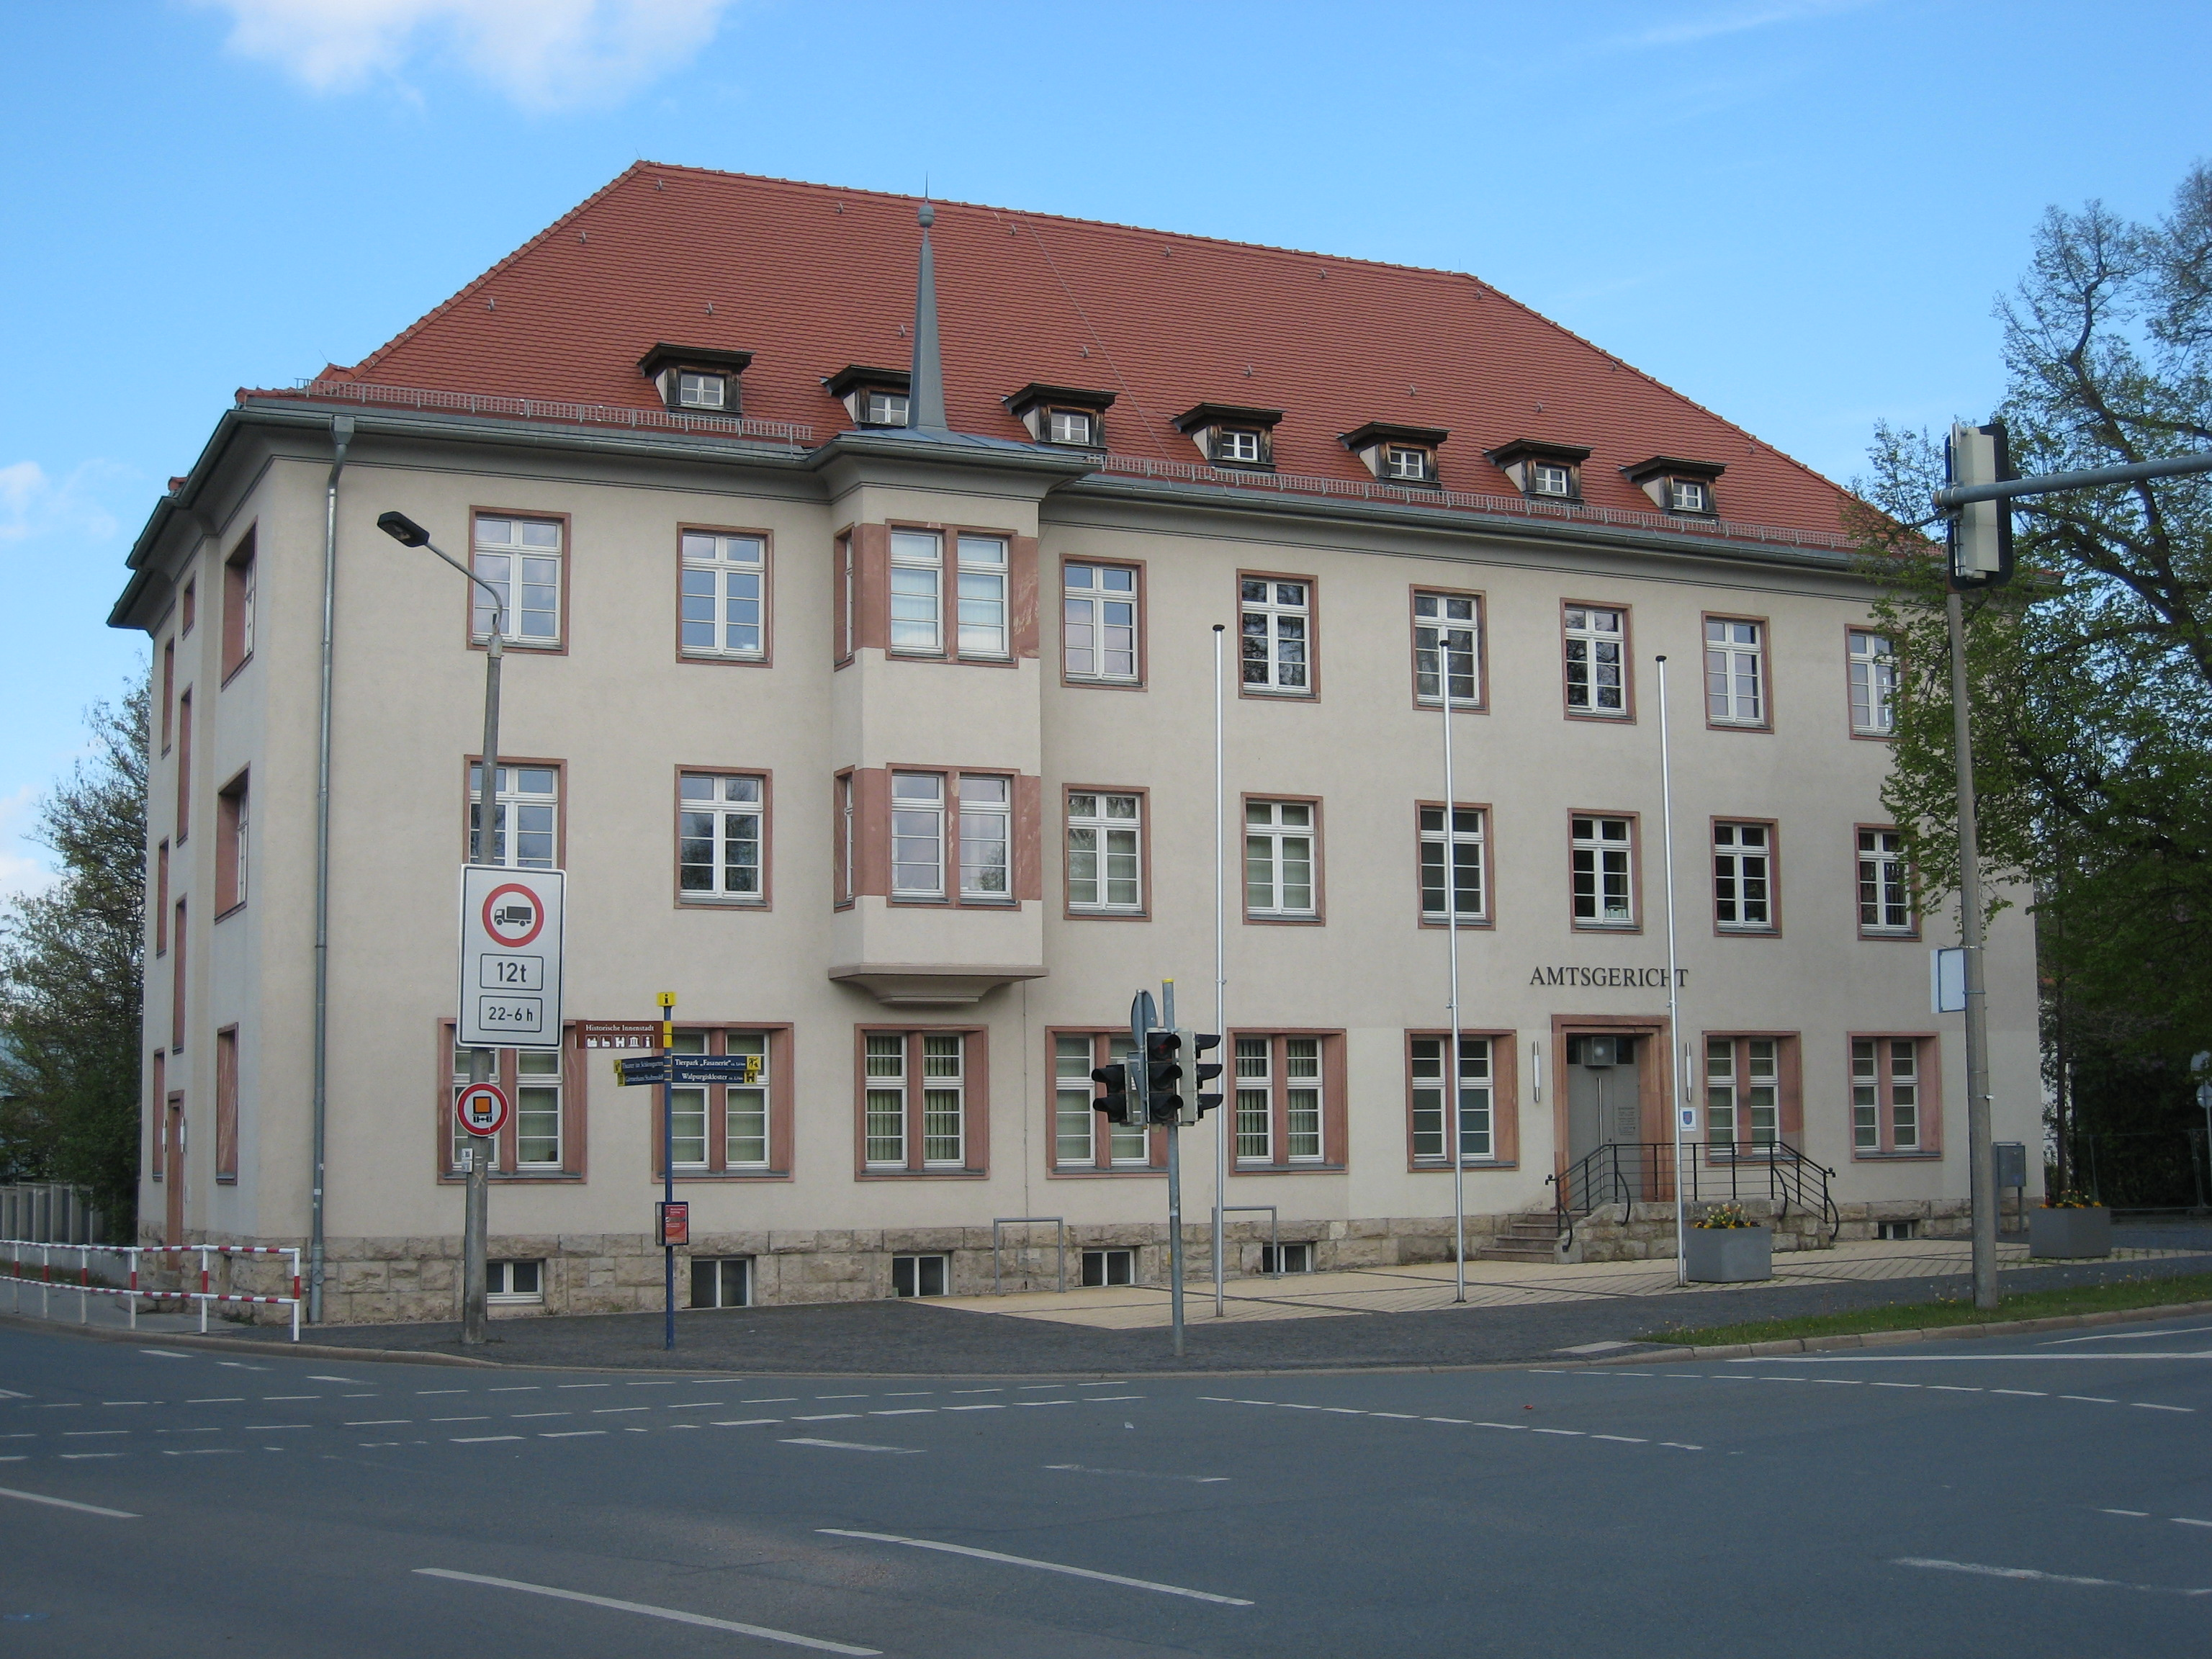 https://upload.wikimedia.org/wikipedia/commons/a/a2/Amtsgericht_tribunal_Arnstadt.JPG